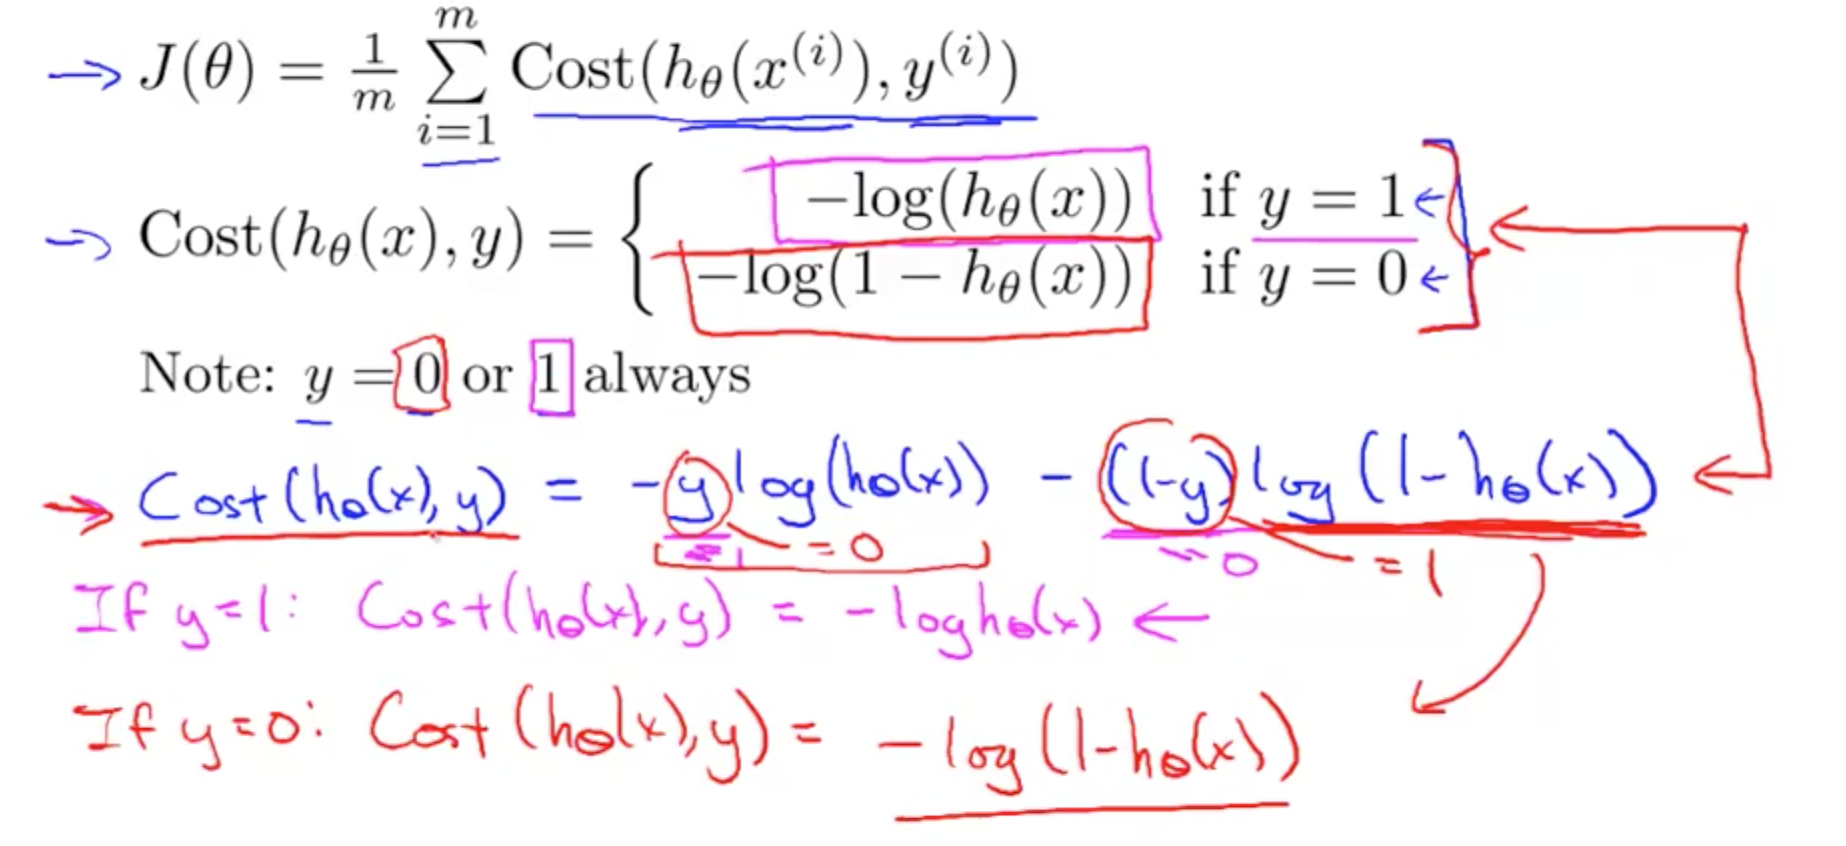 Logistic Regression | Machine Learning, Deep Learning, and